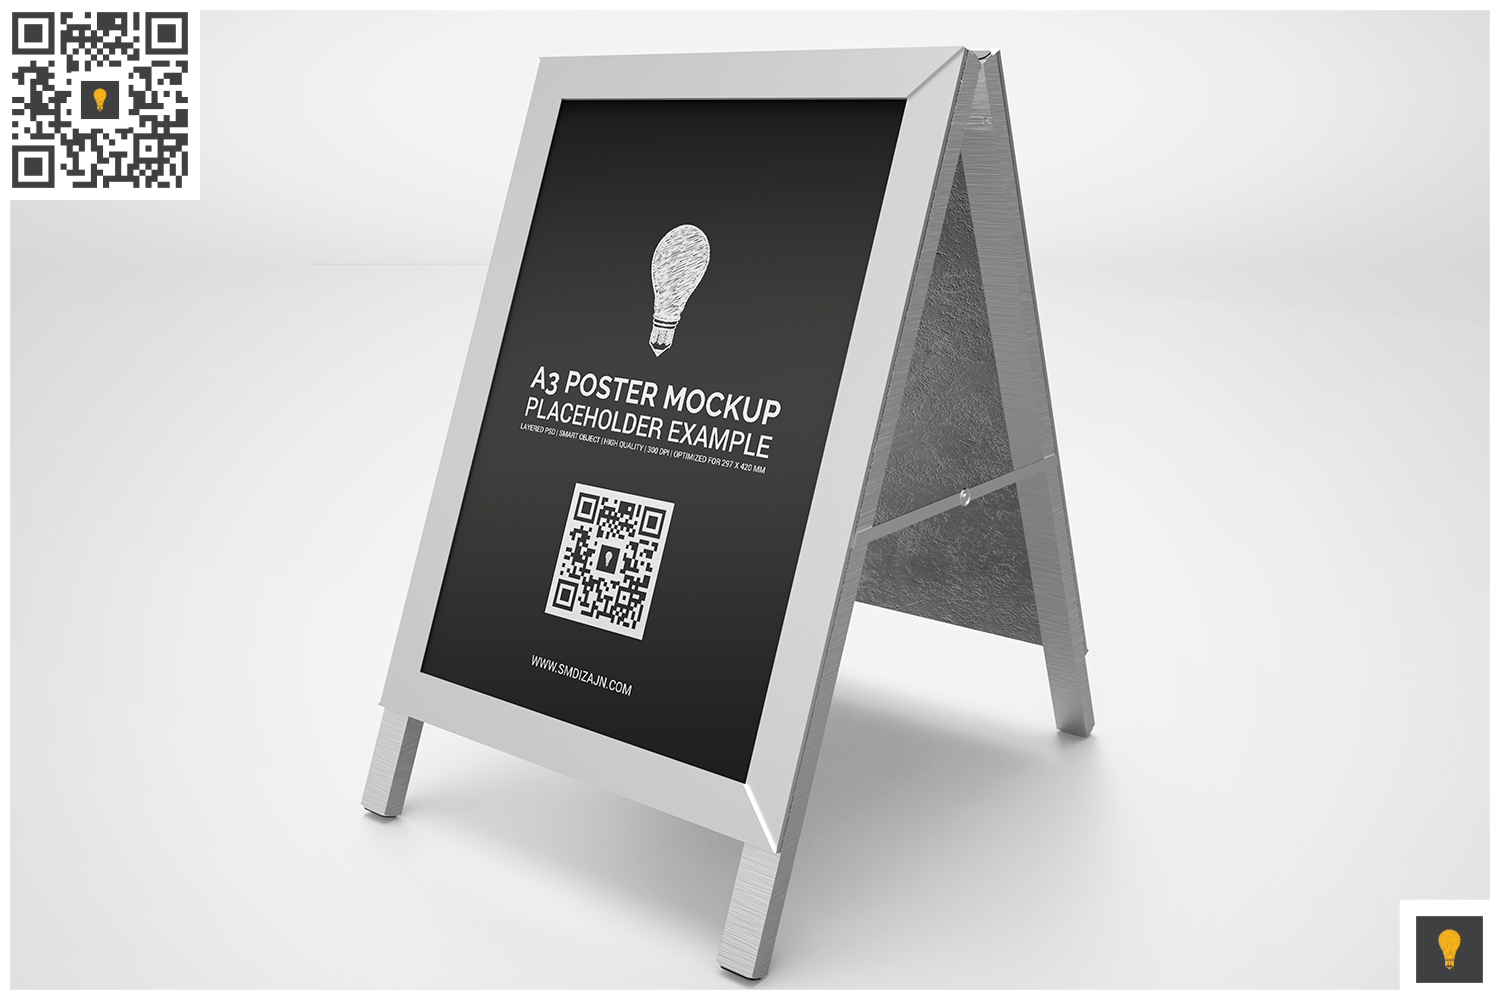 Poster Stand Display Mockup example image 4